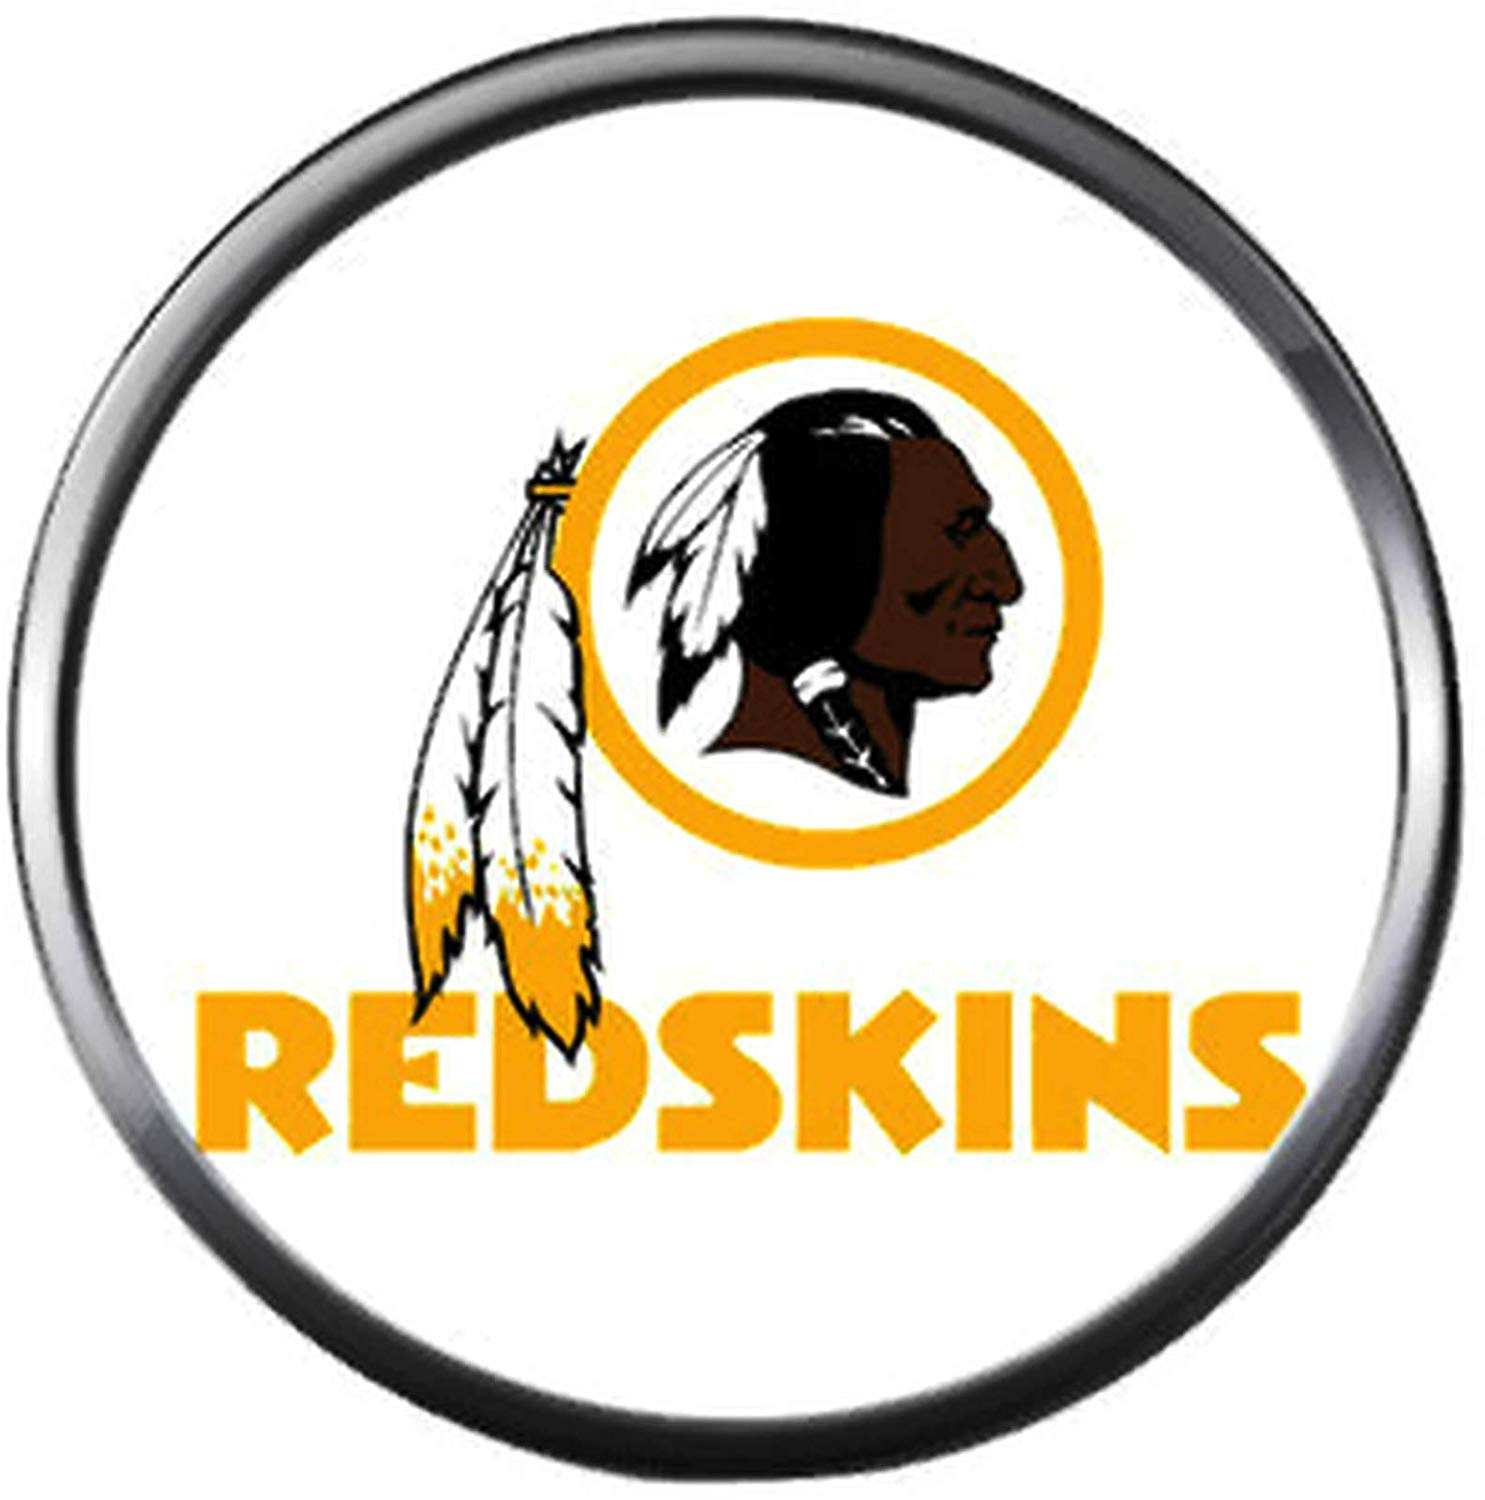 Amazon.com: NFL Washington Redskins Logo On White Skins Team.